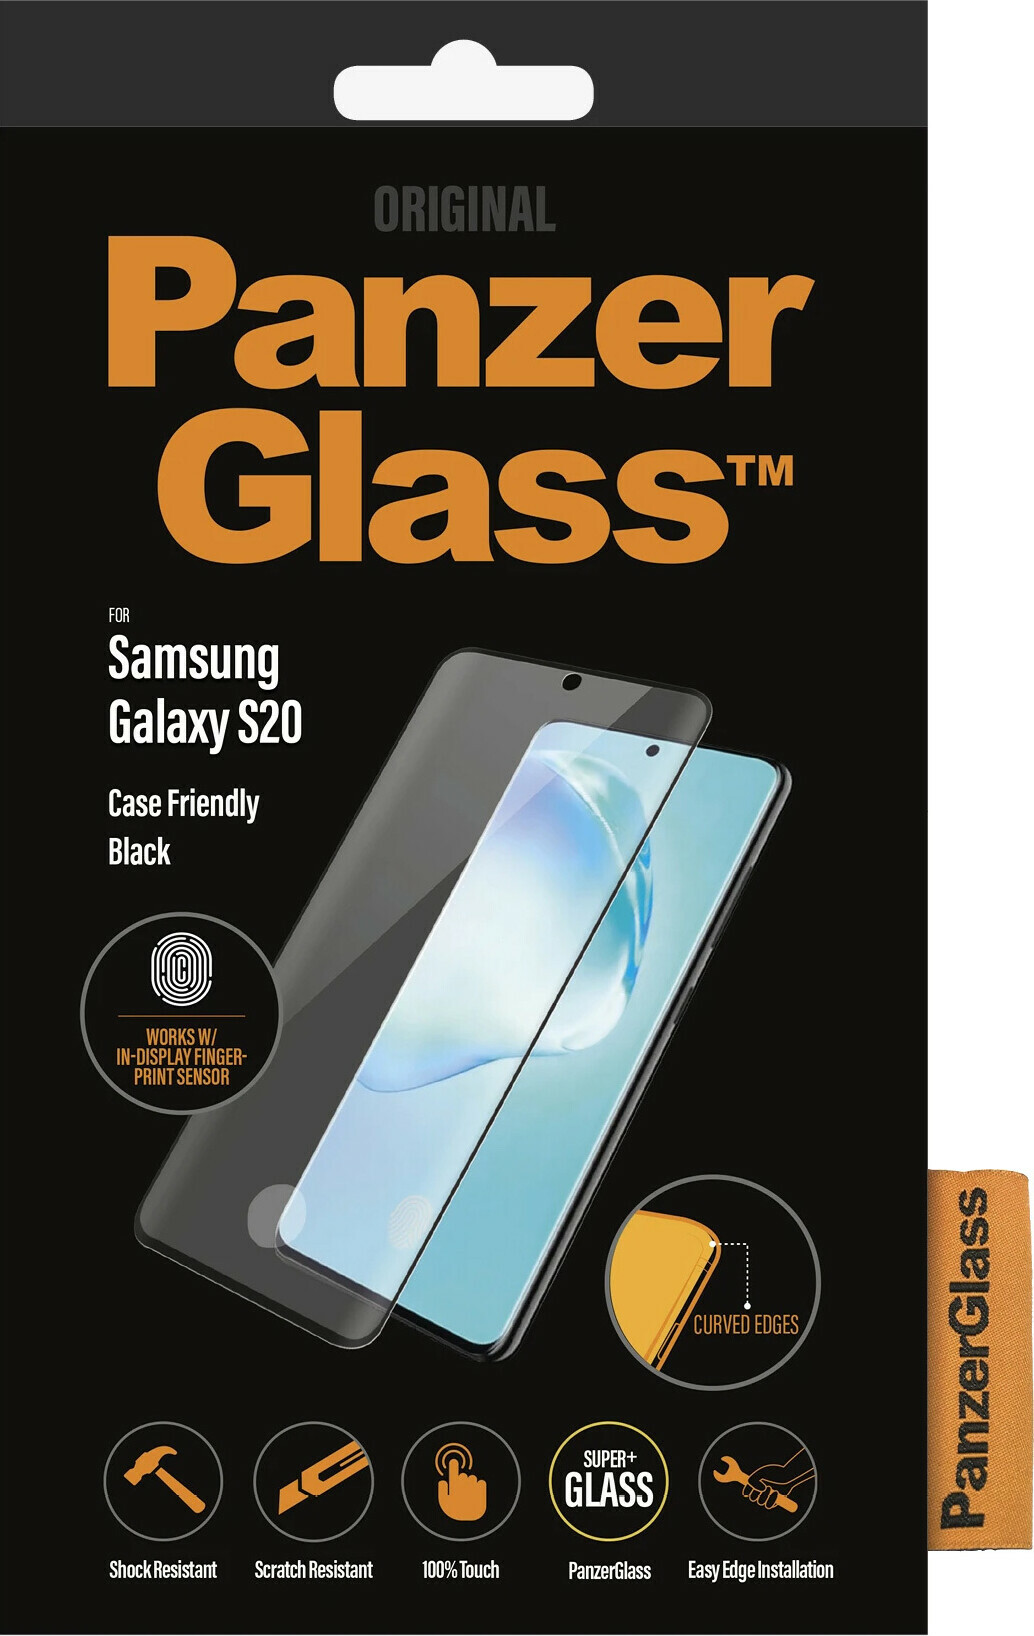 PanzerGlass Samsung Galaxy S20 FP Black Case Friendly Super+ Glass